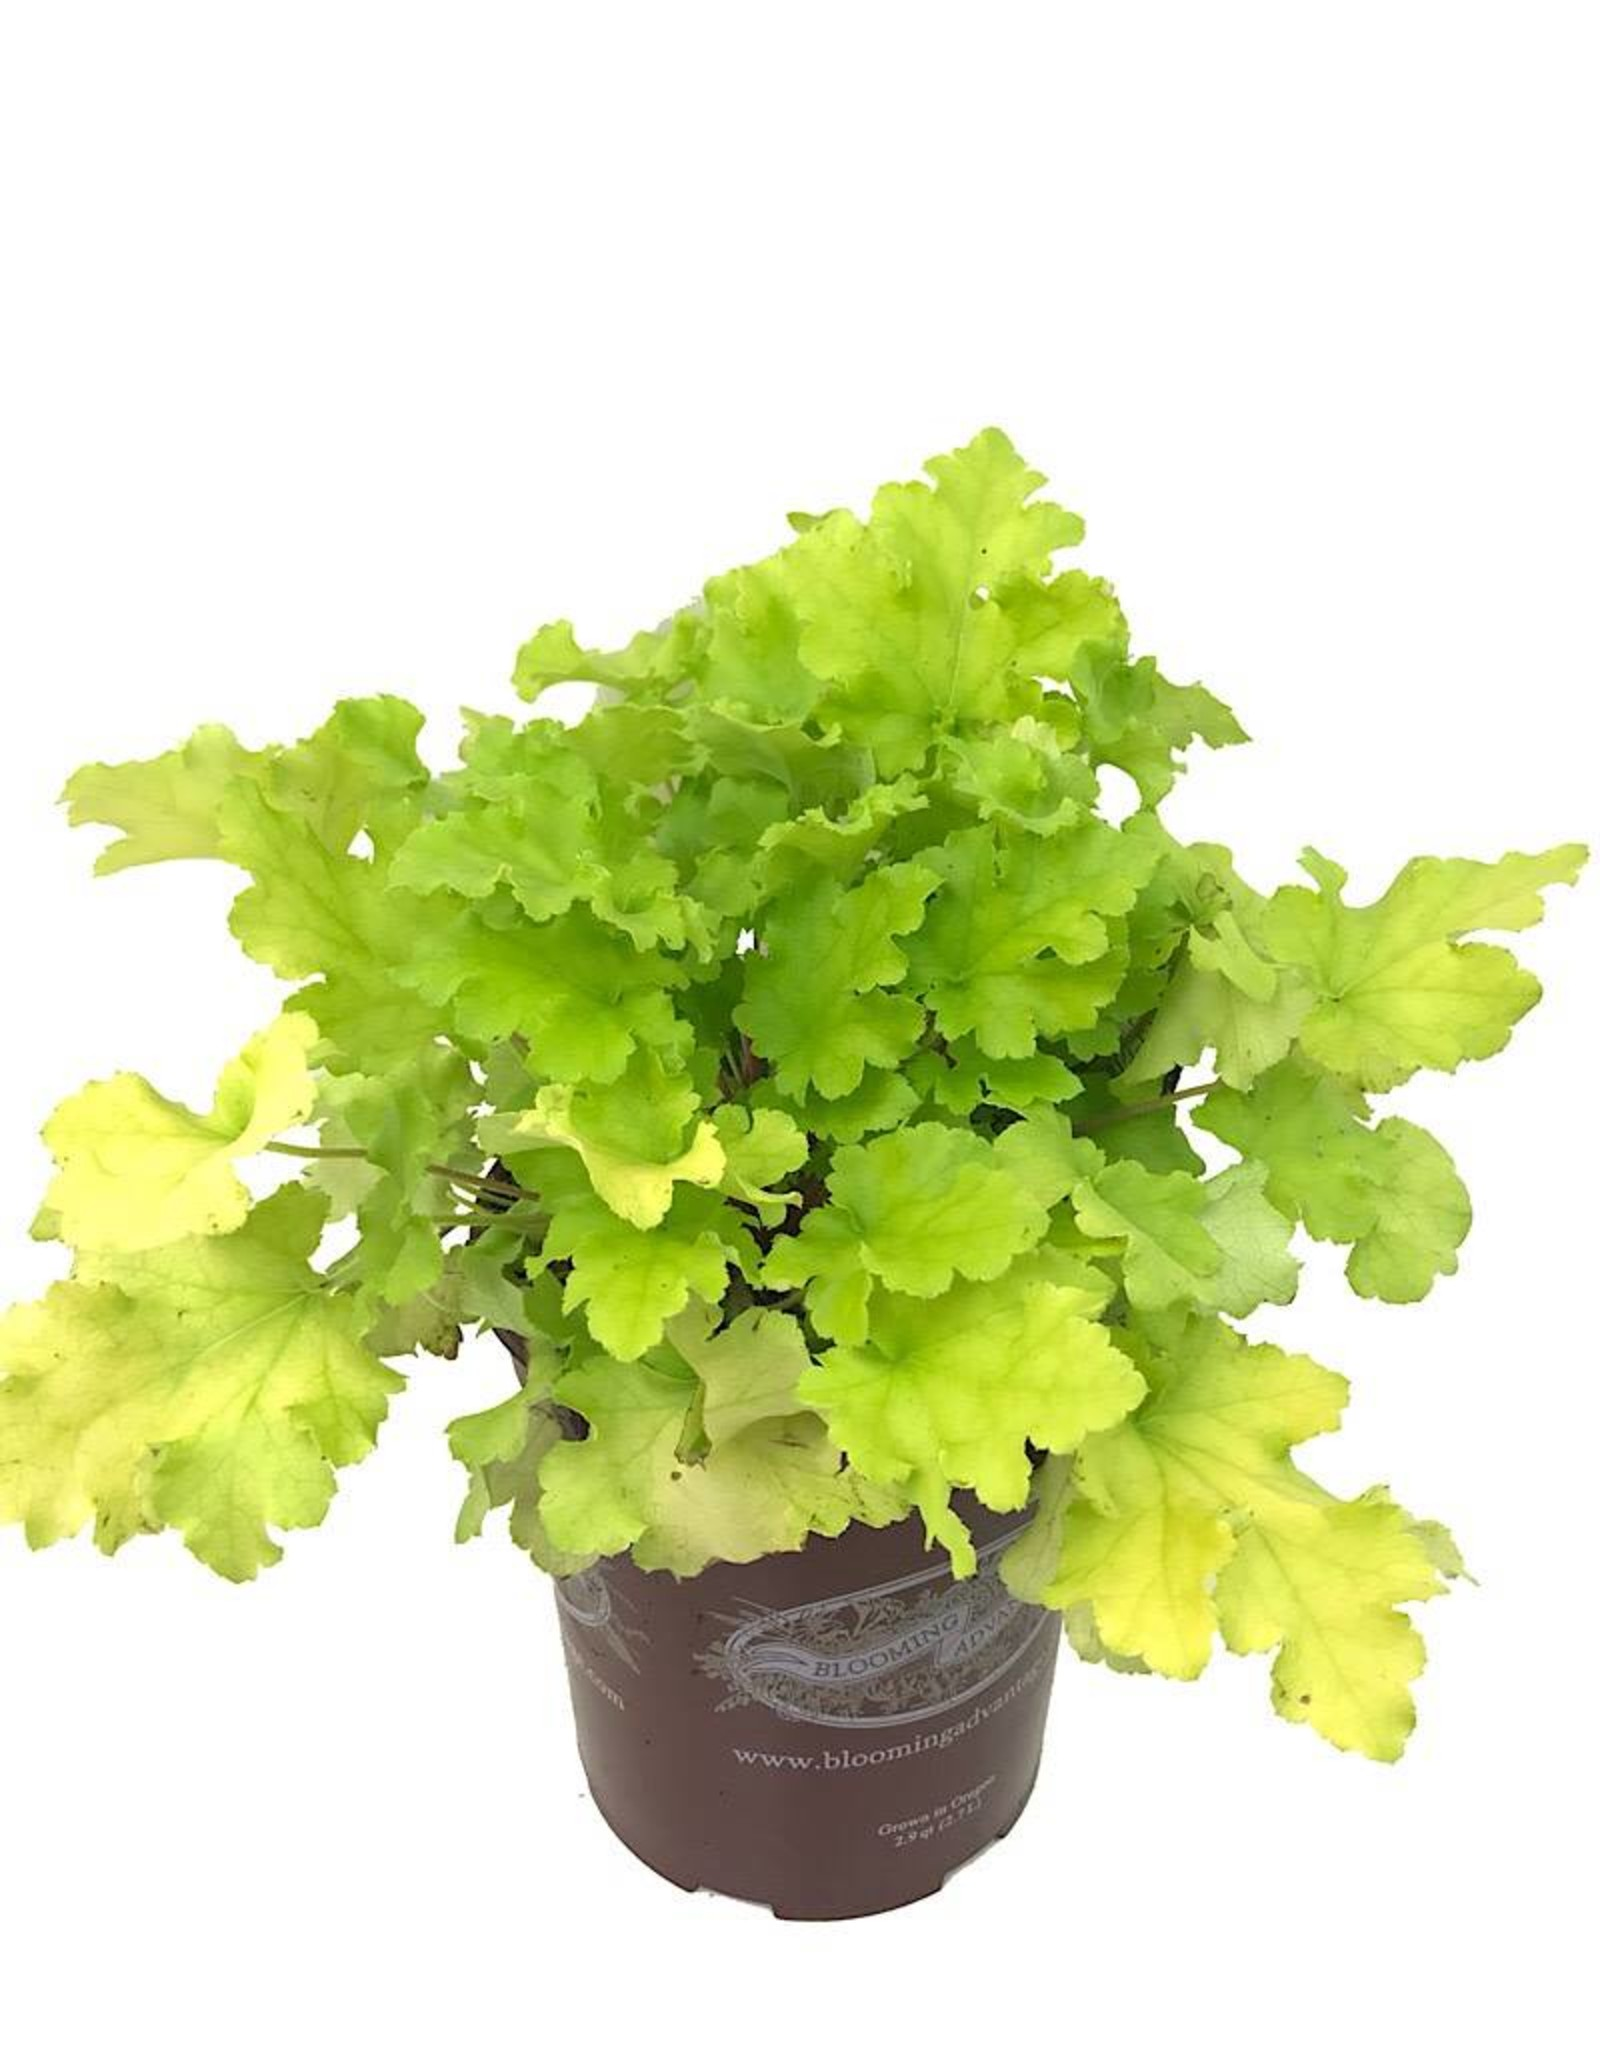 Heuchera 'Lime Marmalade' 1 Gallon